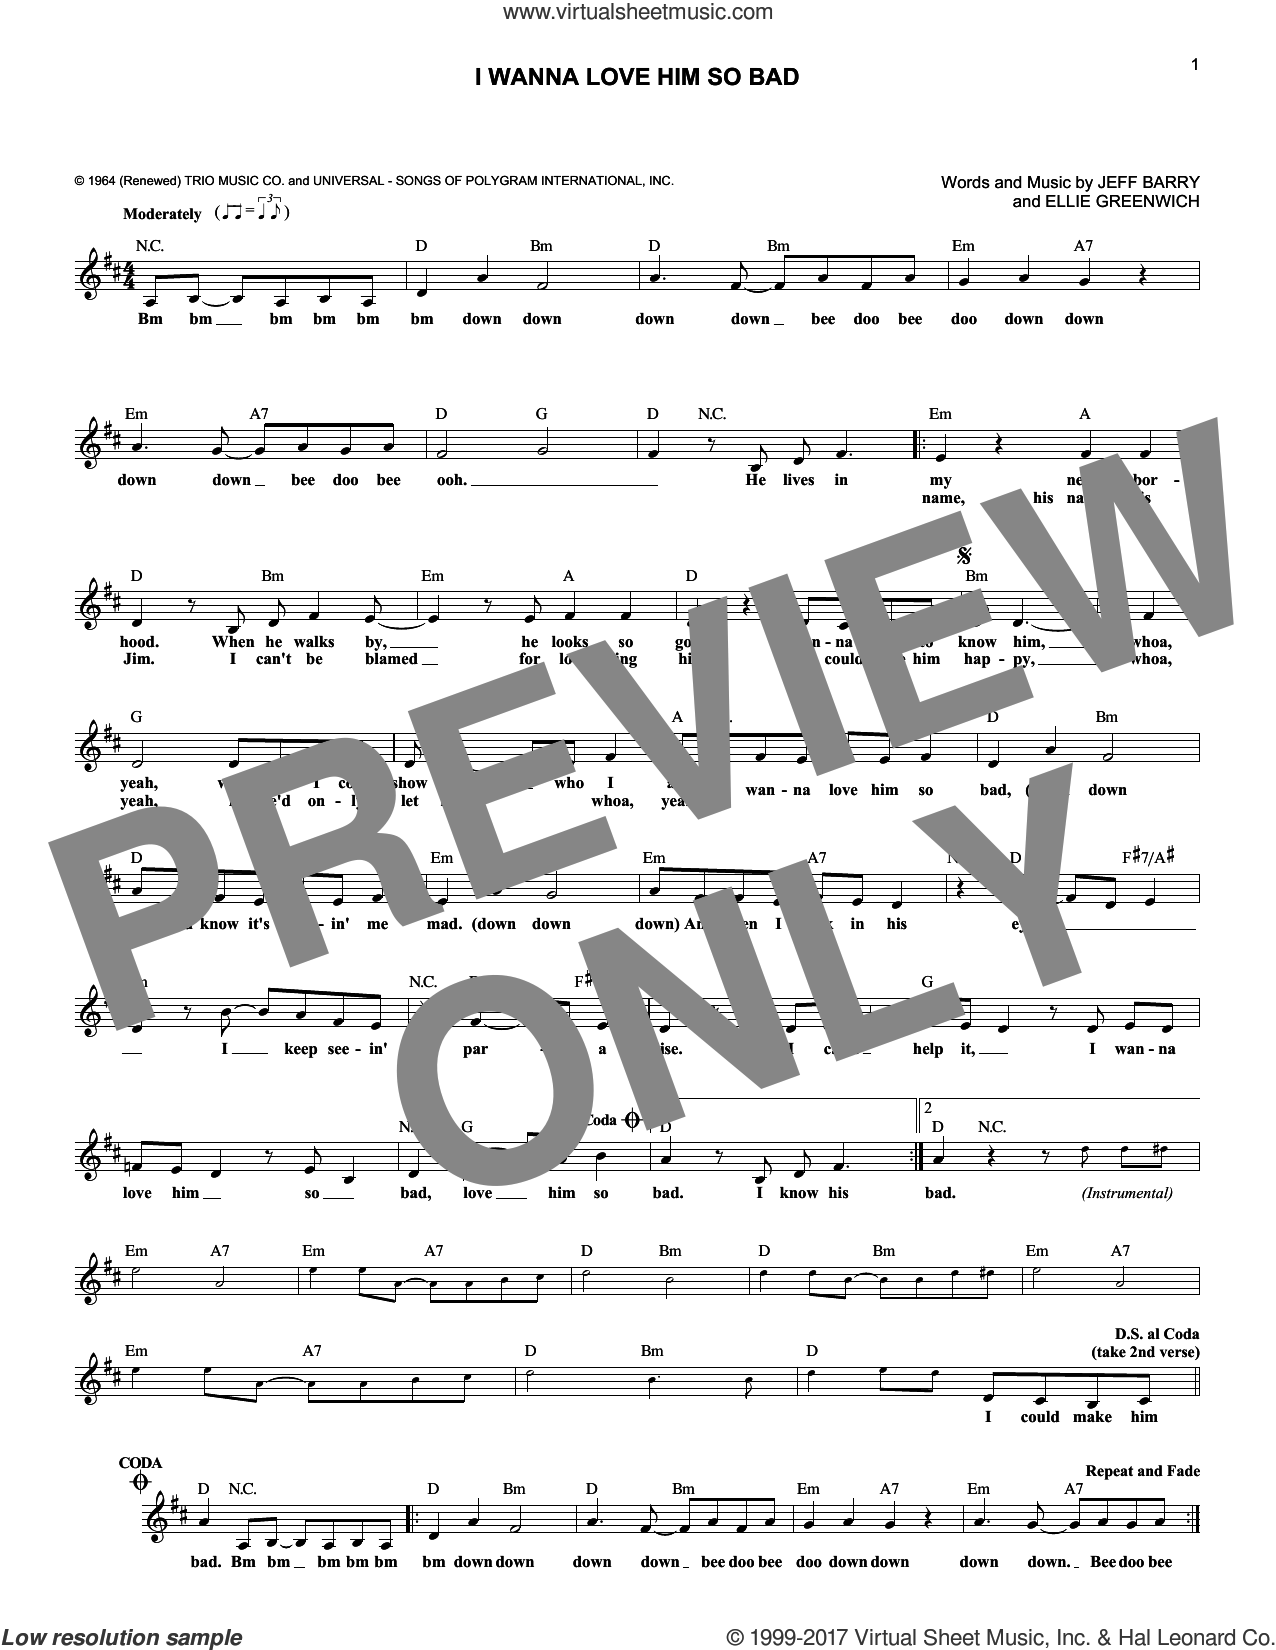 I Wanna Love Him So Bad sheet music for voice and other instruments (fake book) by The Jelly Beans, Ellie Greenwich and Jeff Barry, intermediate. Score Image Preview.